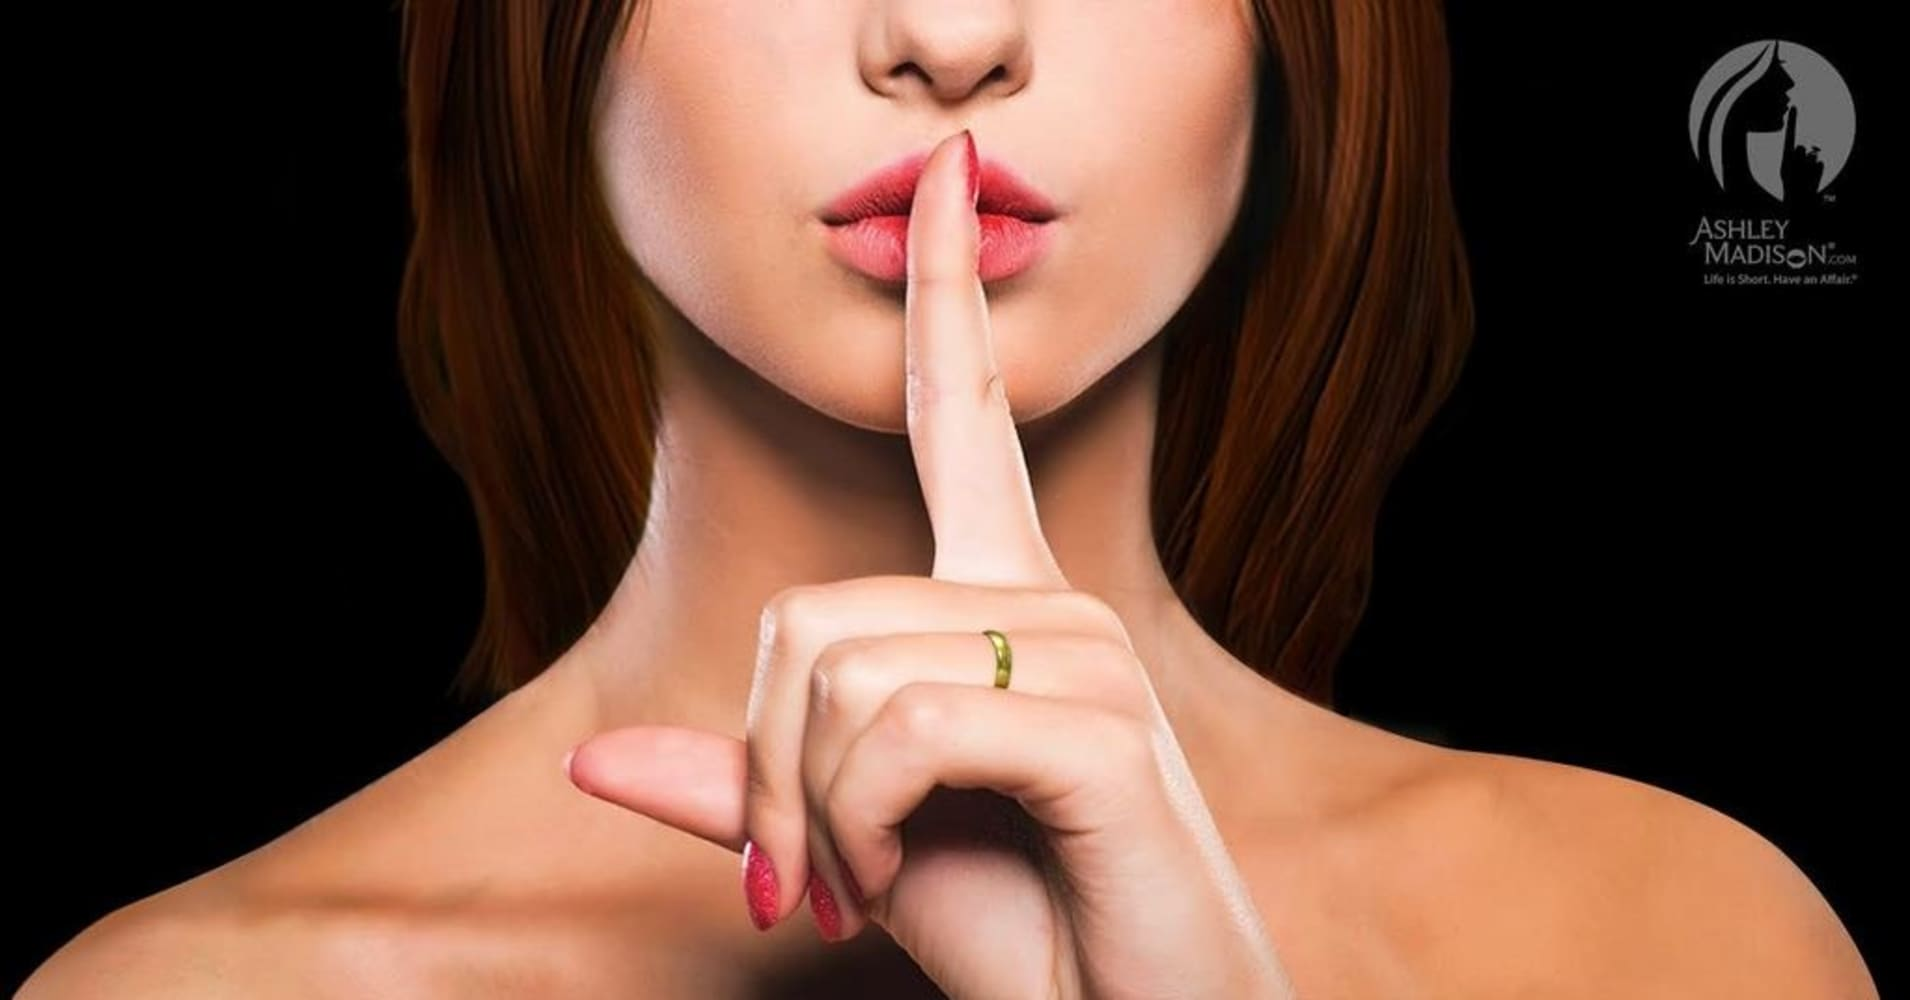 ashley madison for women